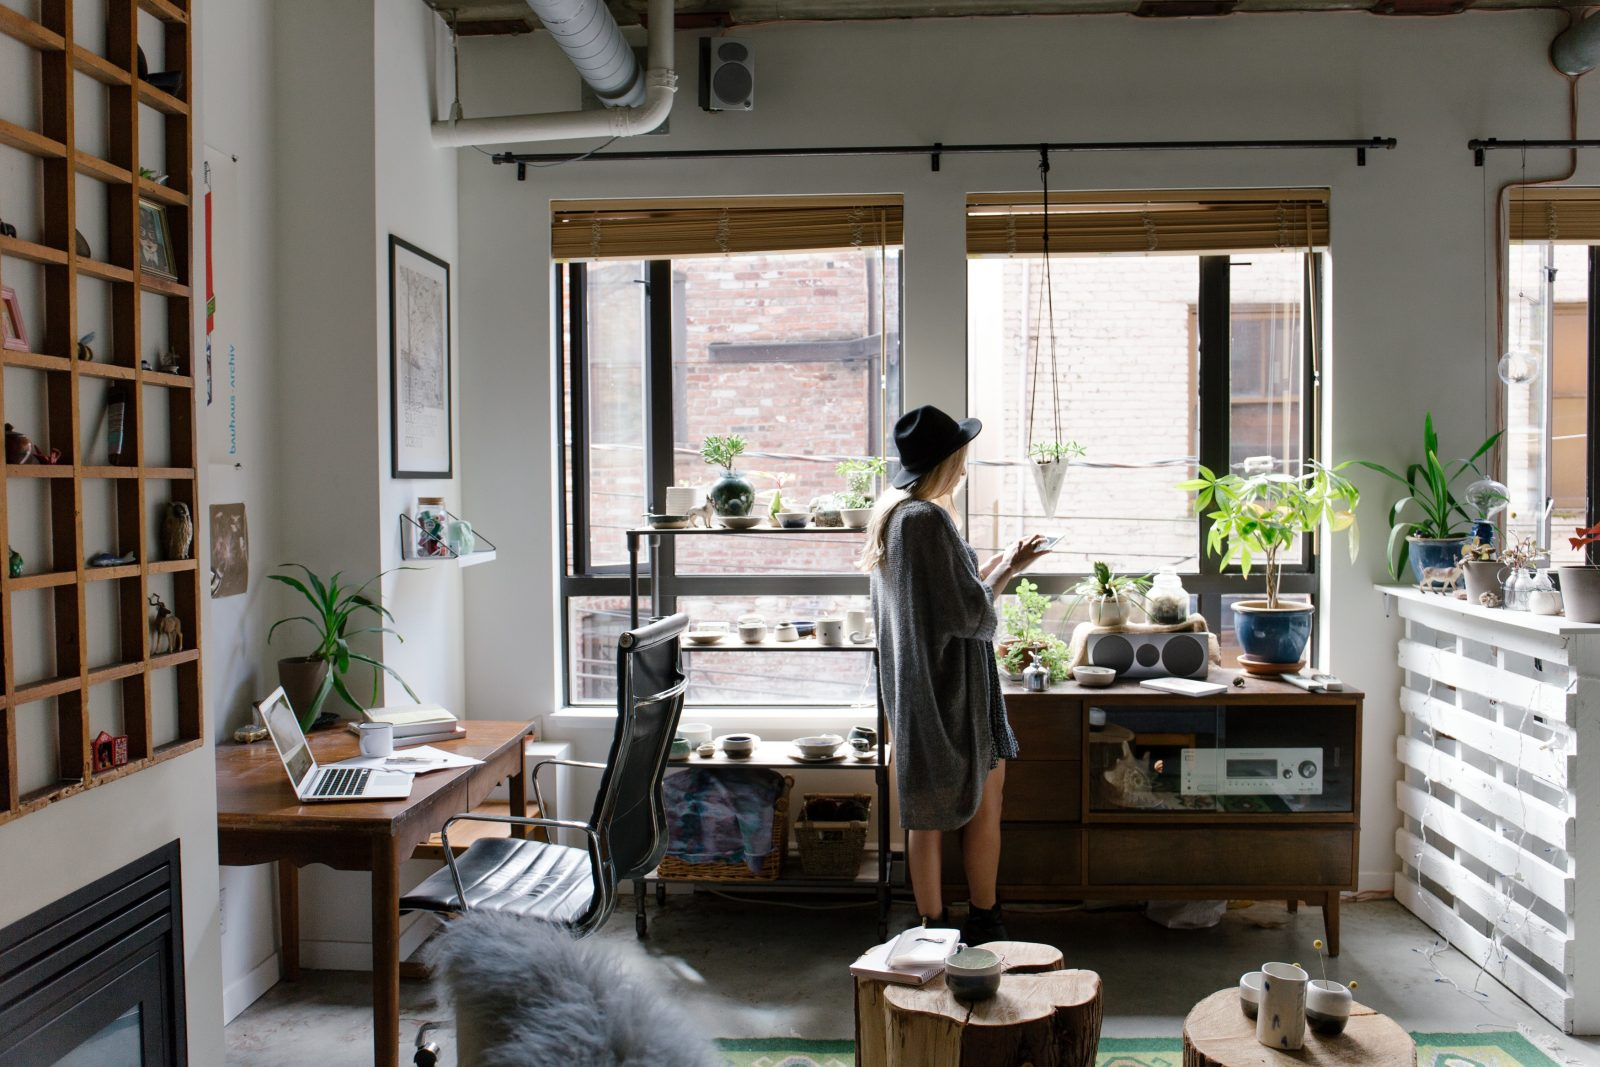 A Real Estate Agent Who Lives In 250 Sq Ft Apartment Shares Her Top 3 Small E Living Tips